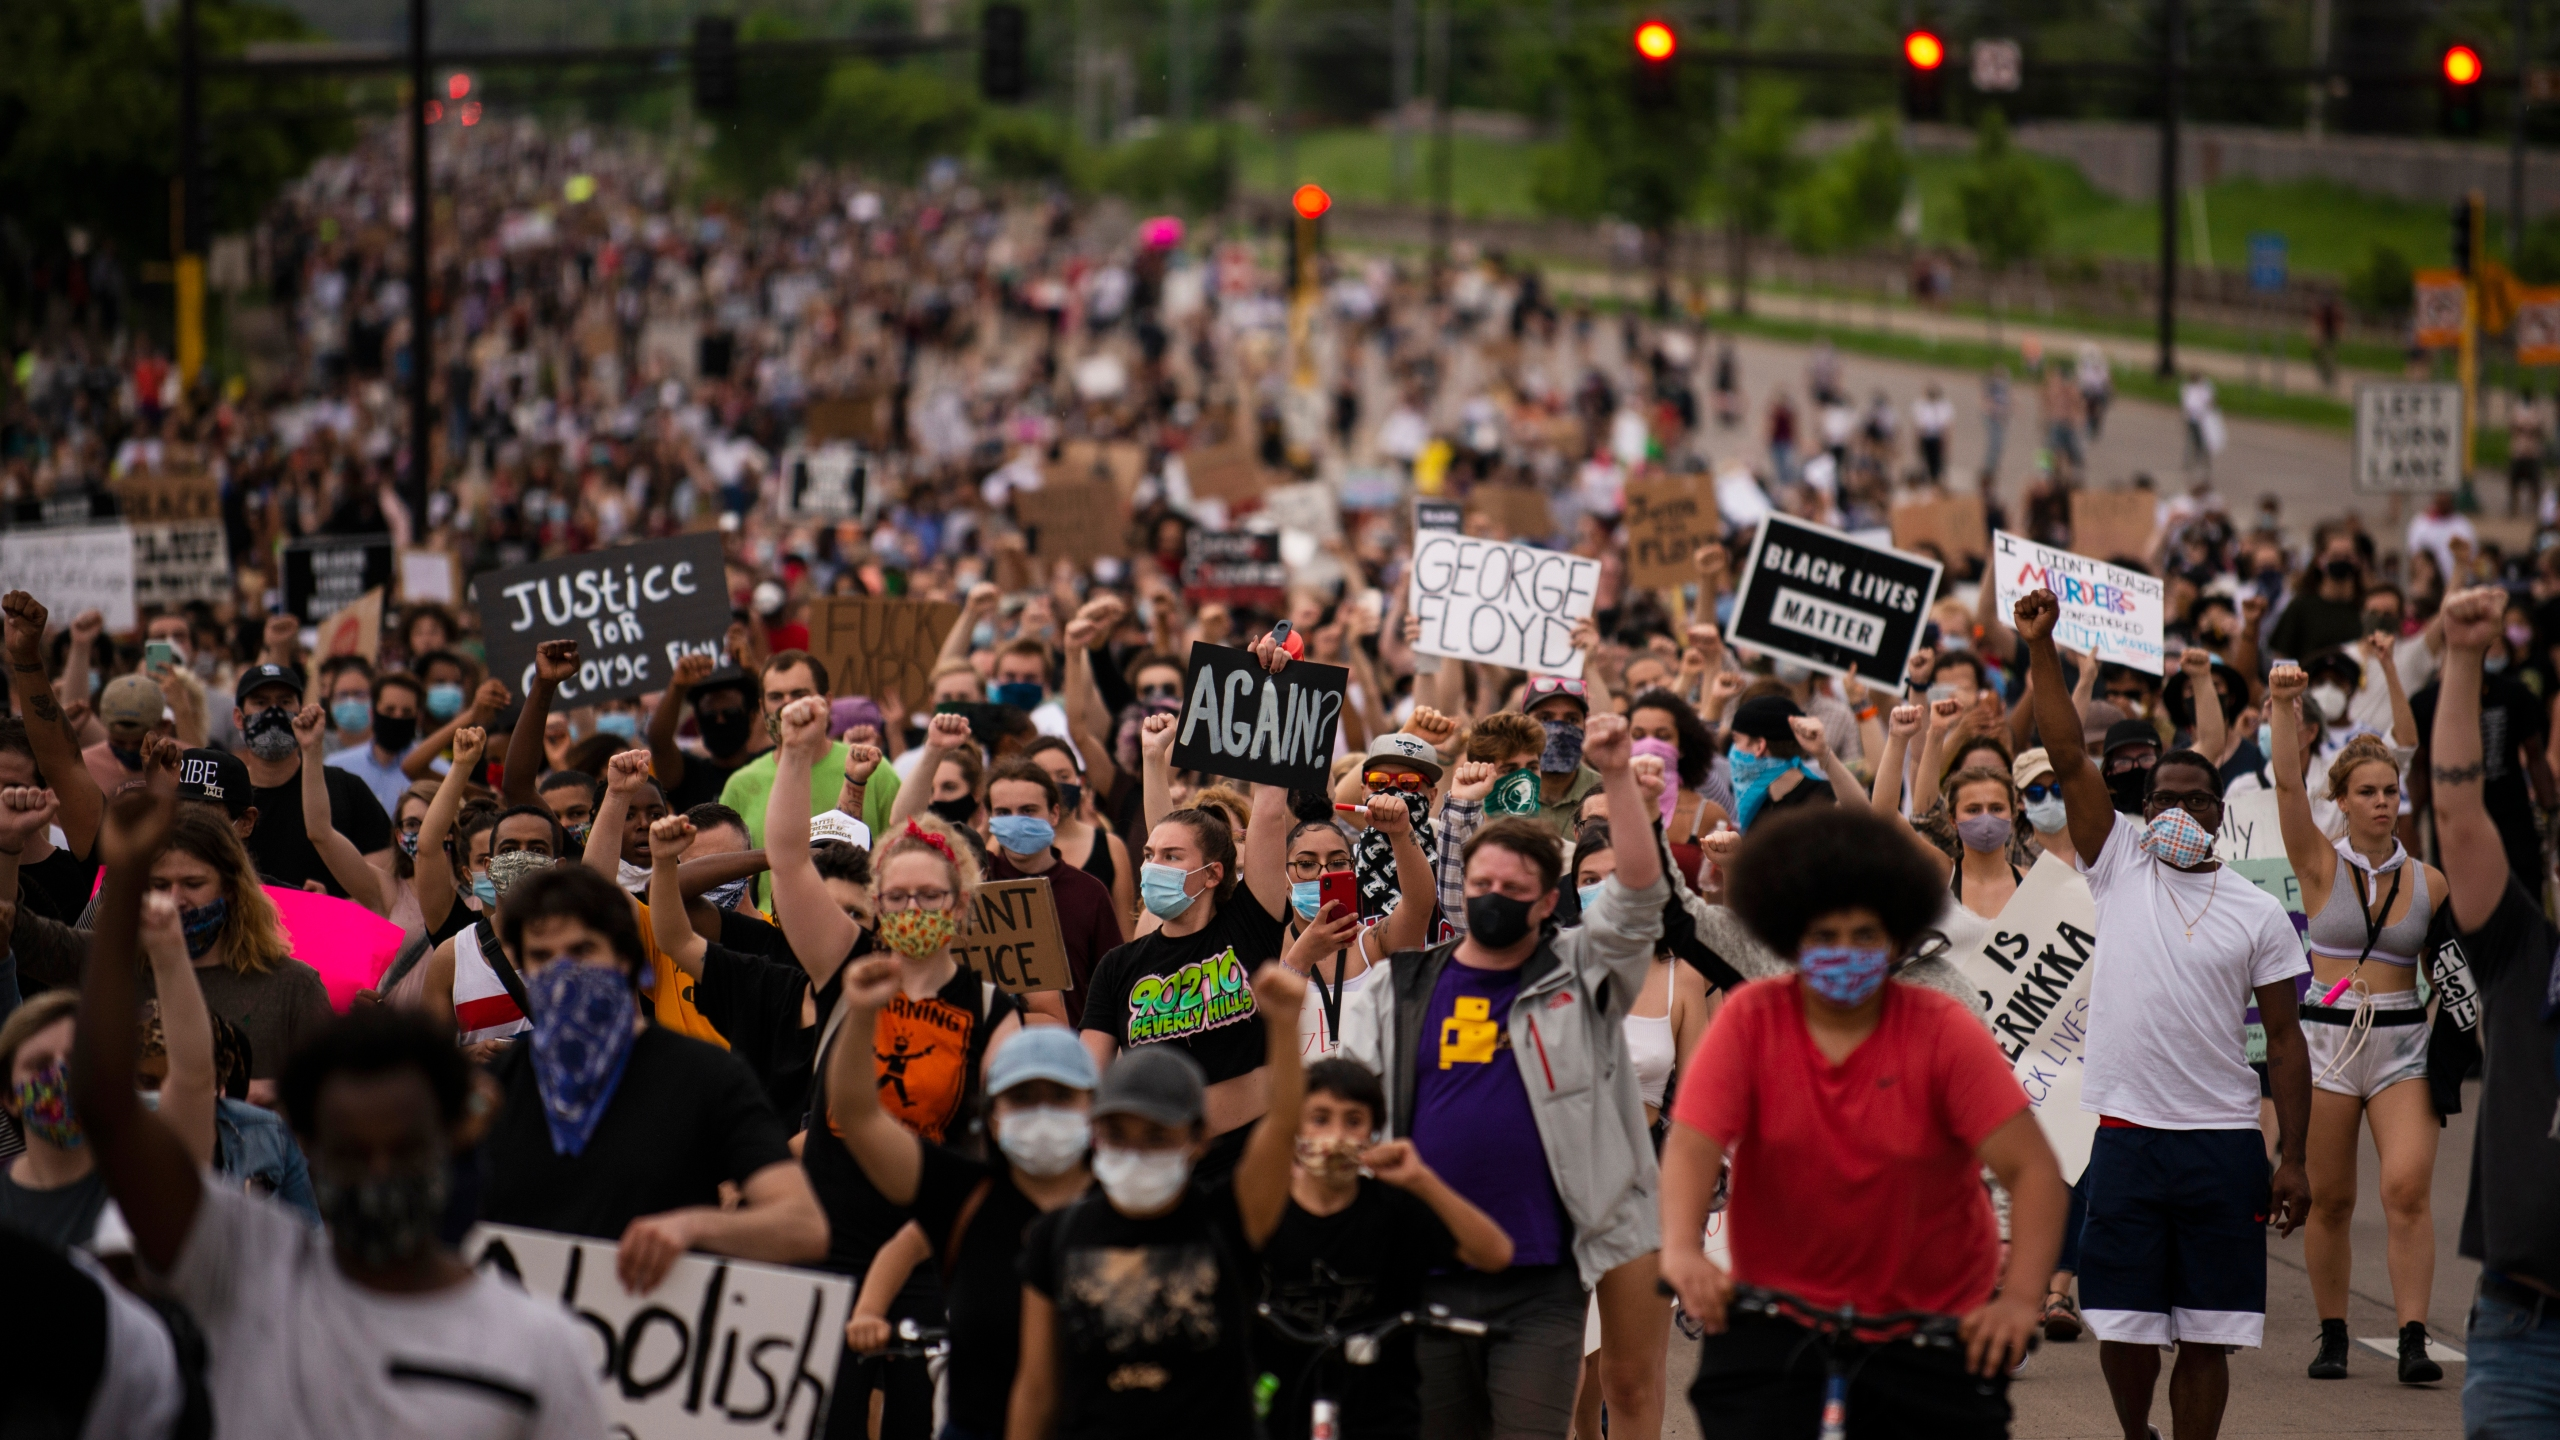 Protesters march on Hiawatha Avenue while decrying the killing of George Floyd on May 26, 2020 in Minneapolis, Minnesota. (Stephen Maturen/Getty Images)